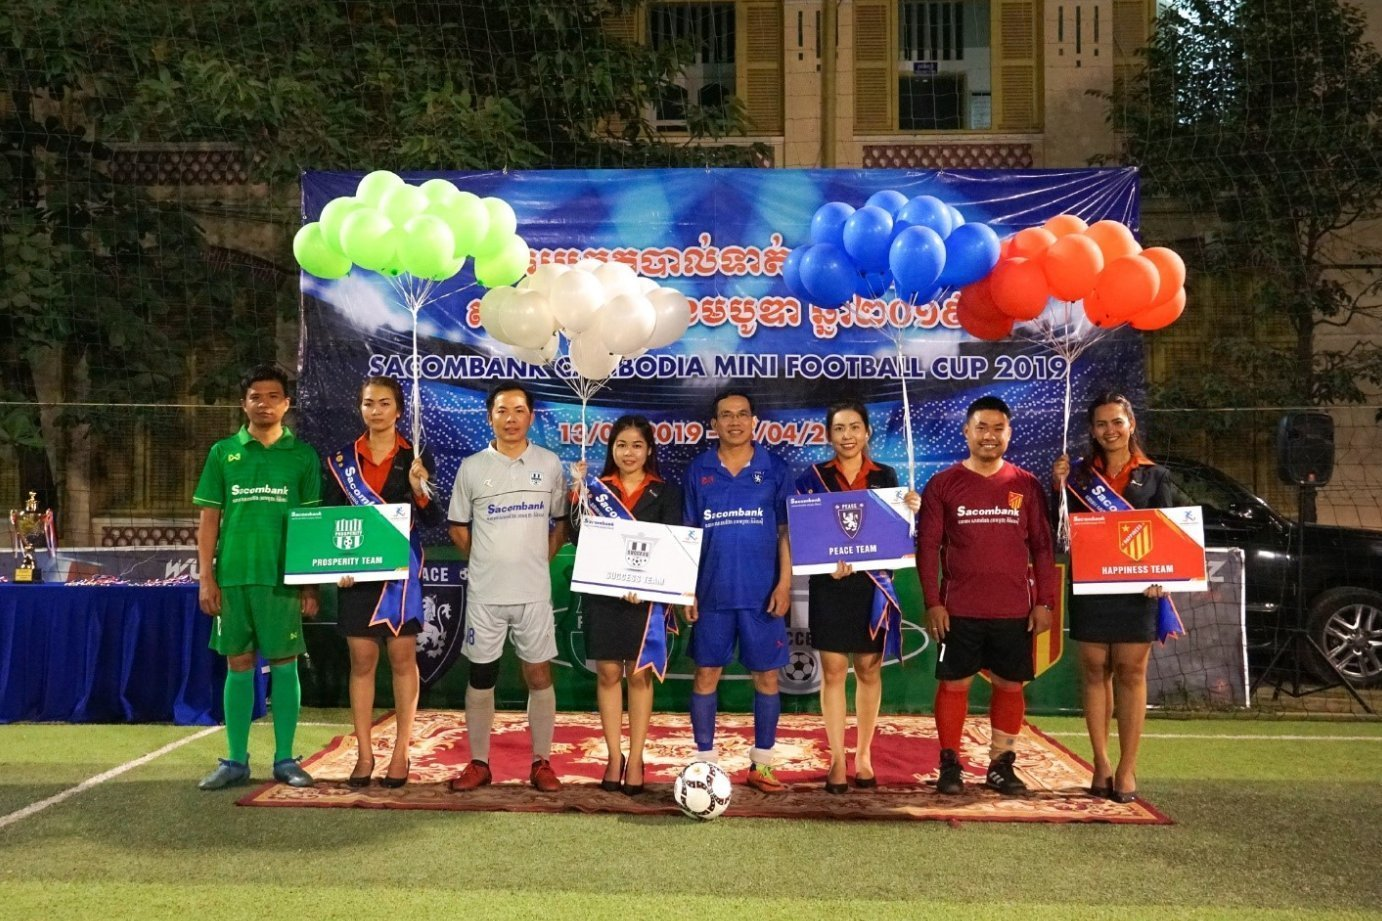 The performance of the staff of Sacombank Cambodia in the Opening Ceremony